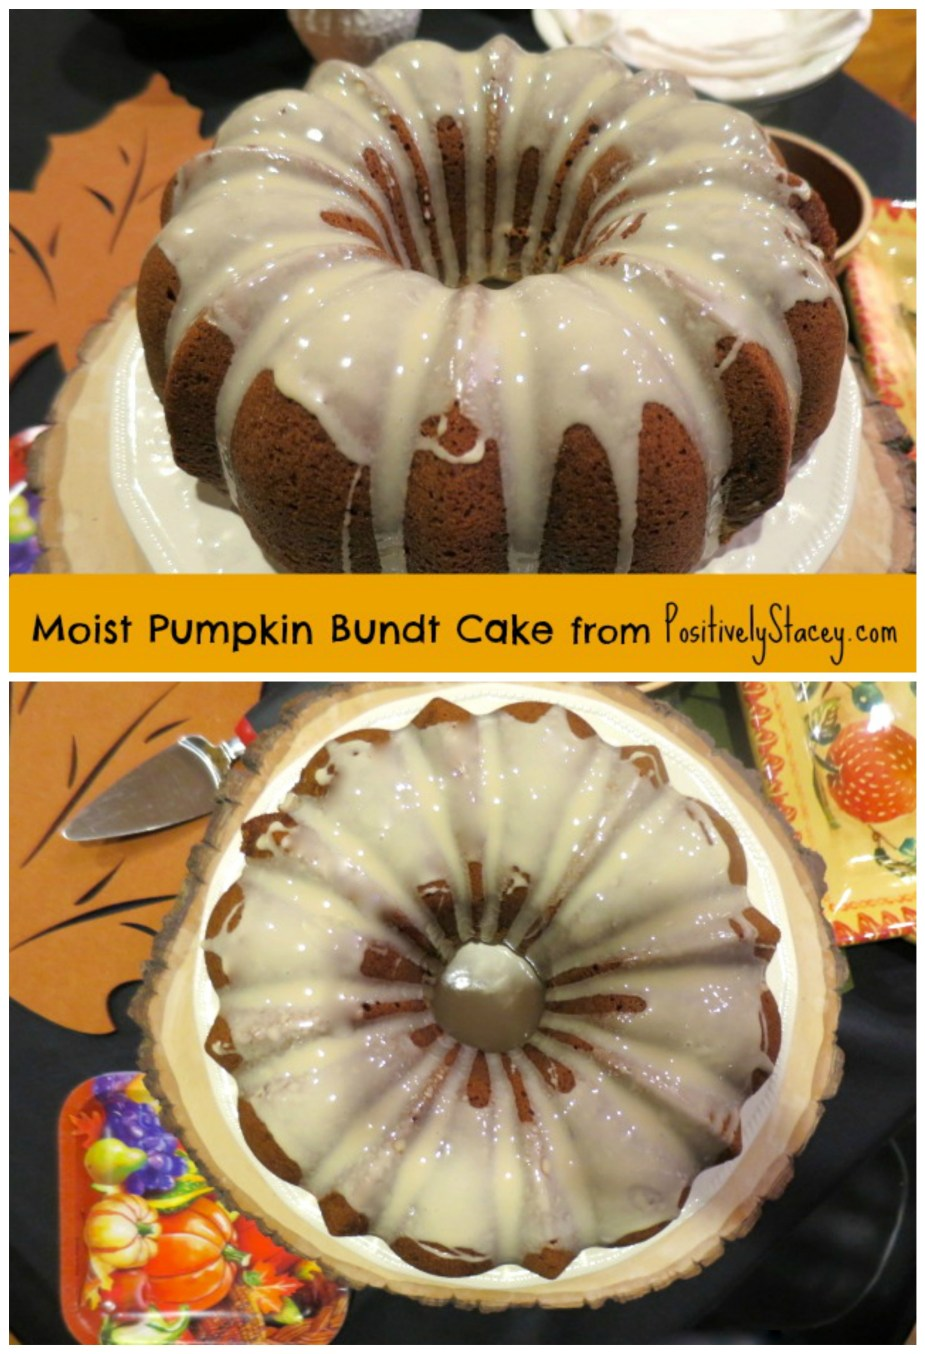 This cake was absolutely delicious! It is very moist and sort of along the lines of pumpkin bread - not overly sweet. I love Bundt cakes! They are easy to pop out of a Bundt pan, sprinkle with powdered sugar or drizzle with a glaze and viola you have an impressive cake